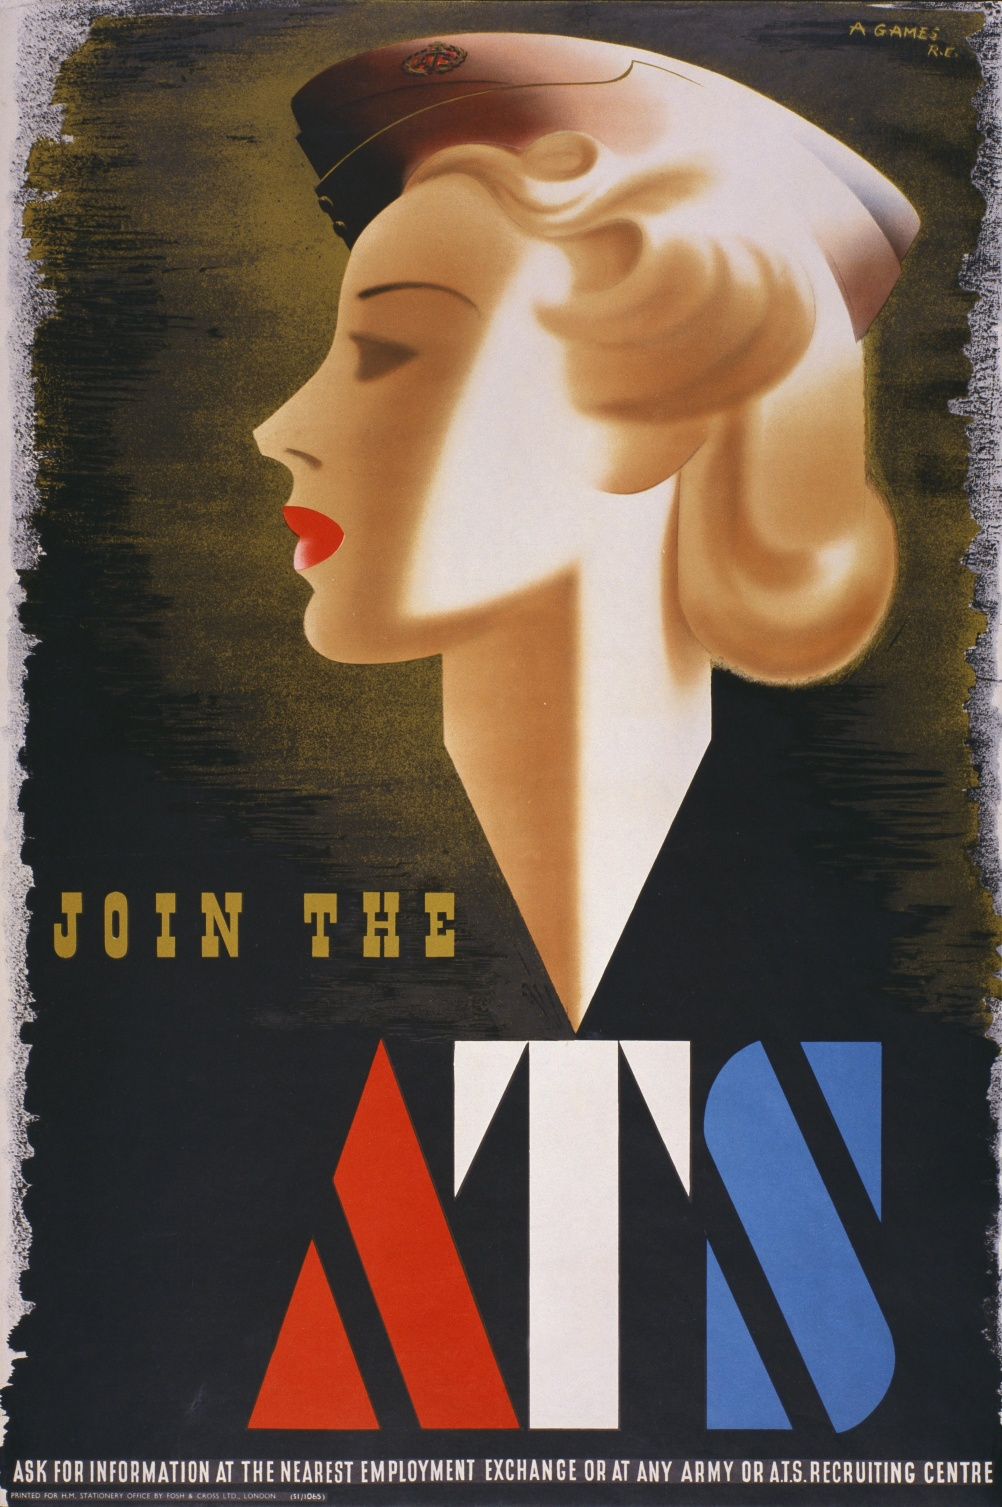 Join the ATS, 1941 Abram Games